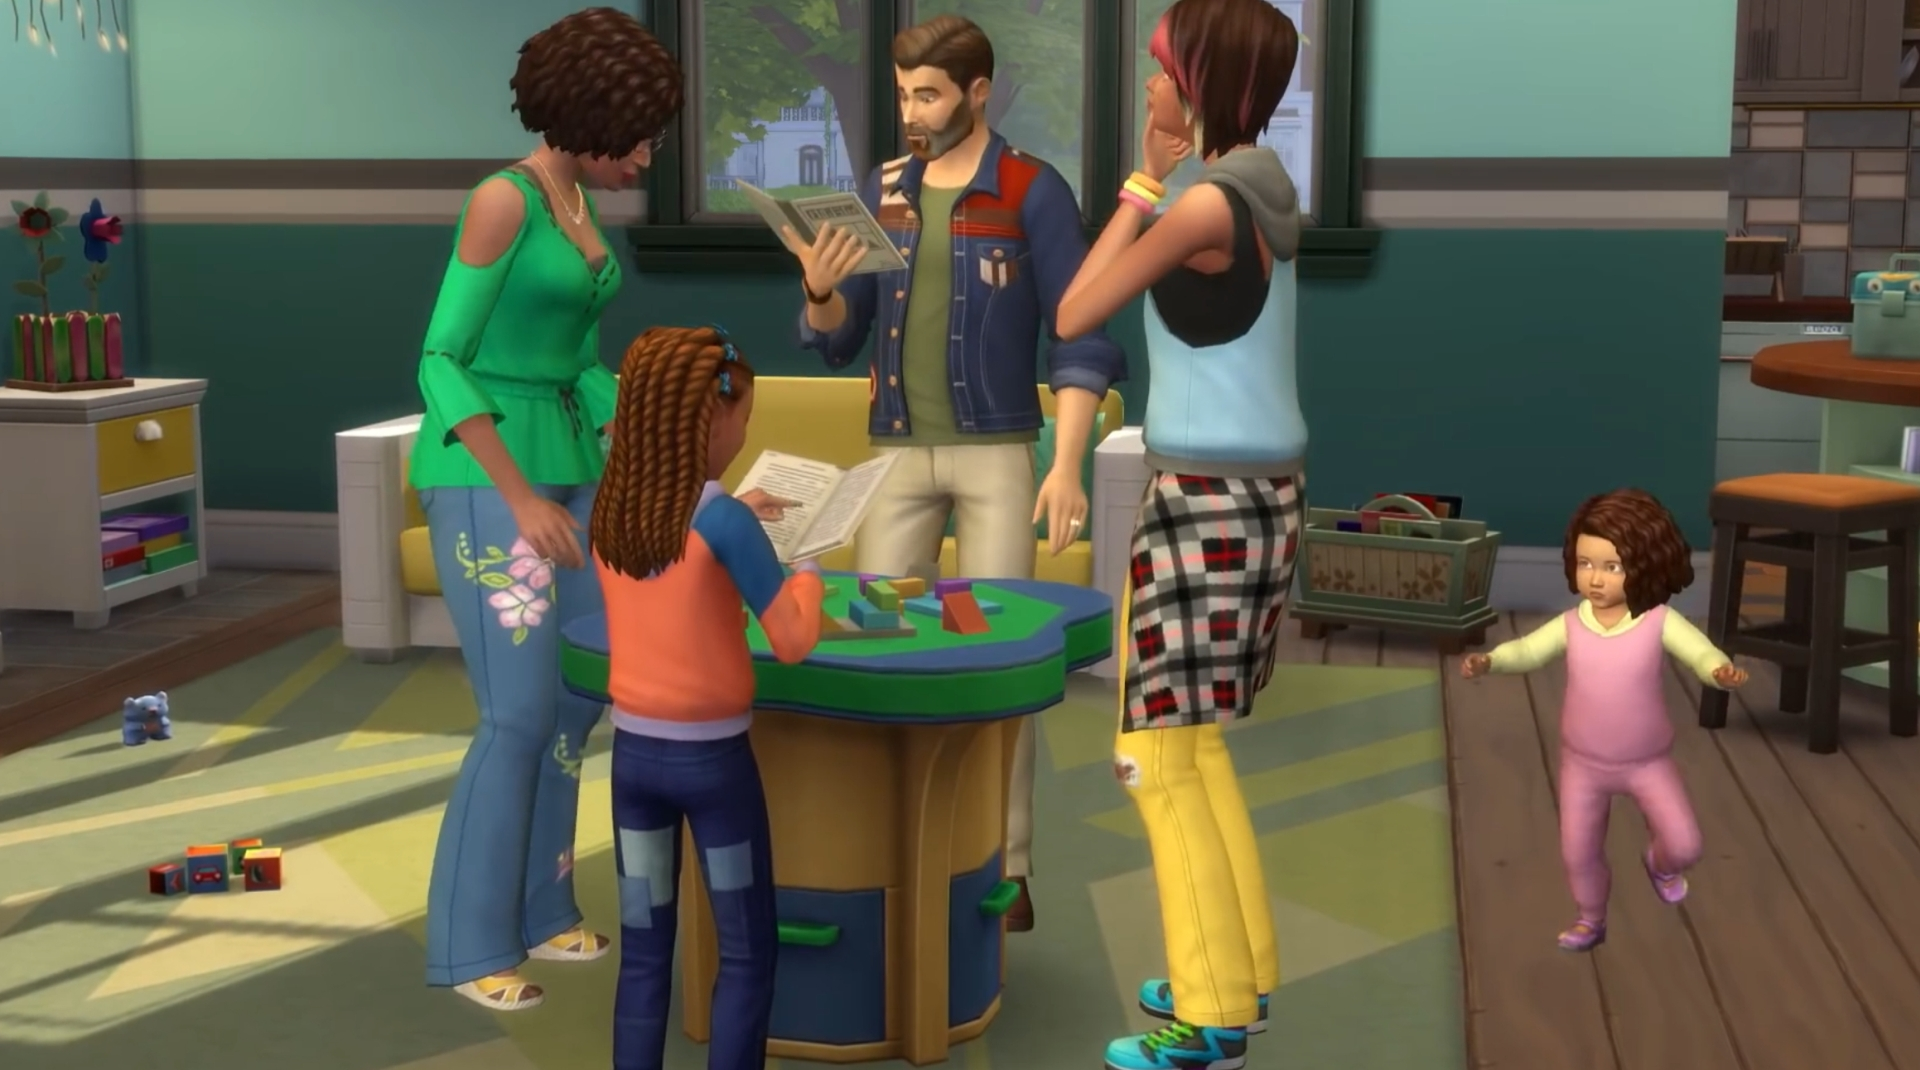 The Sims 4 Parenthood Game Pack: Guides, Features & Pictures